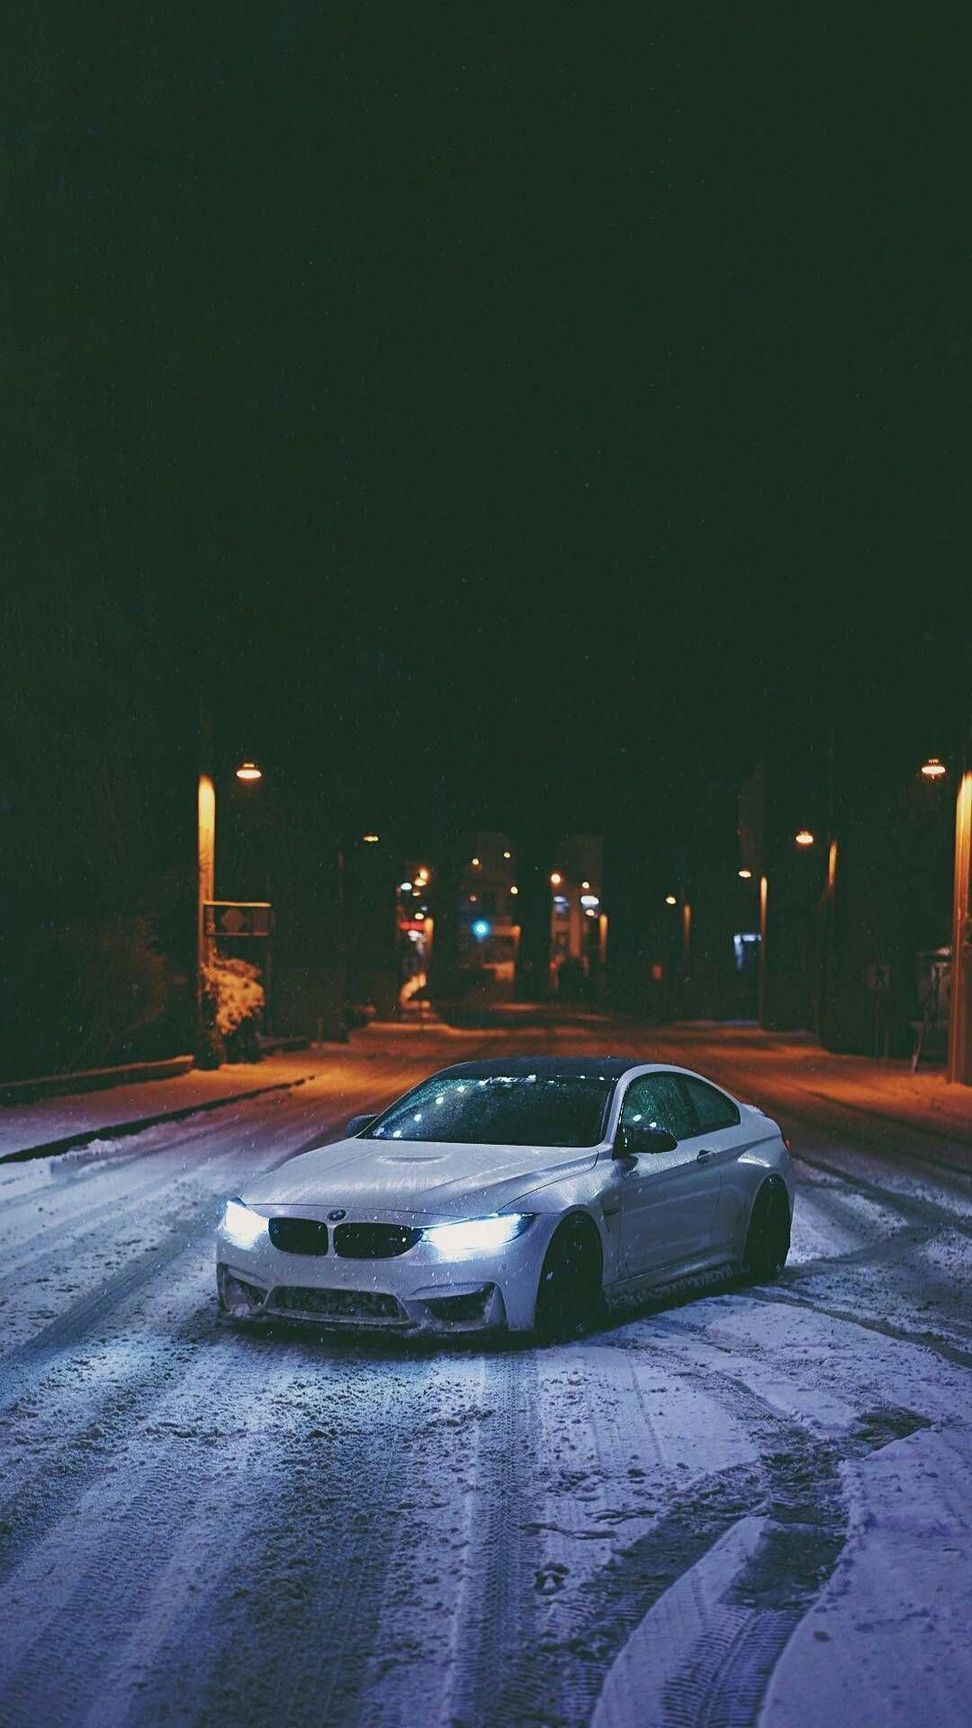 Sport Car Wallpaper Ideas For Android And Iphone 23 With Images